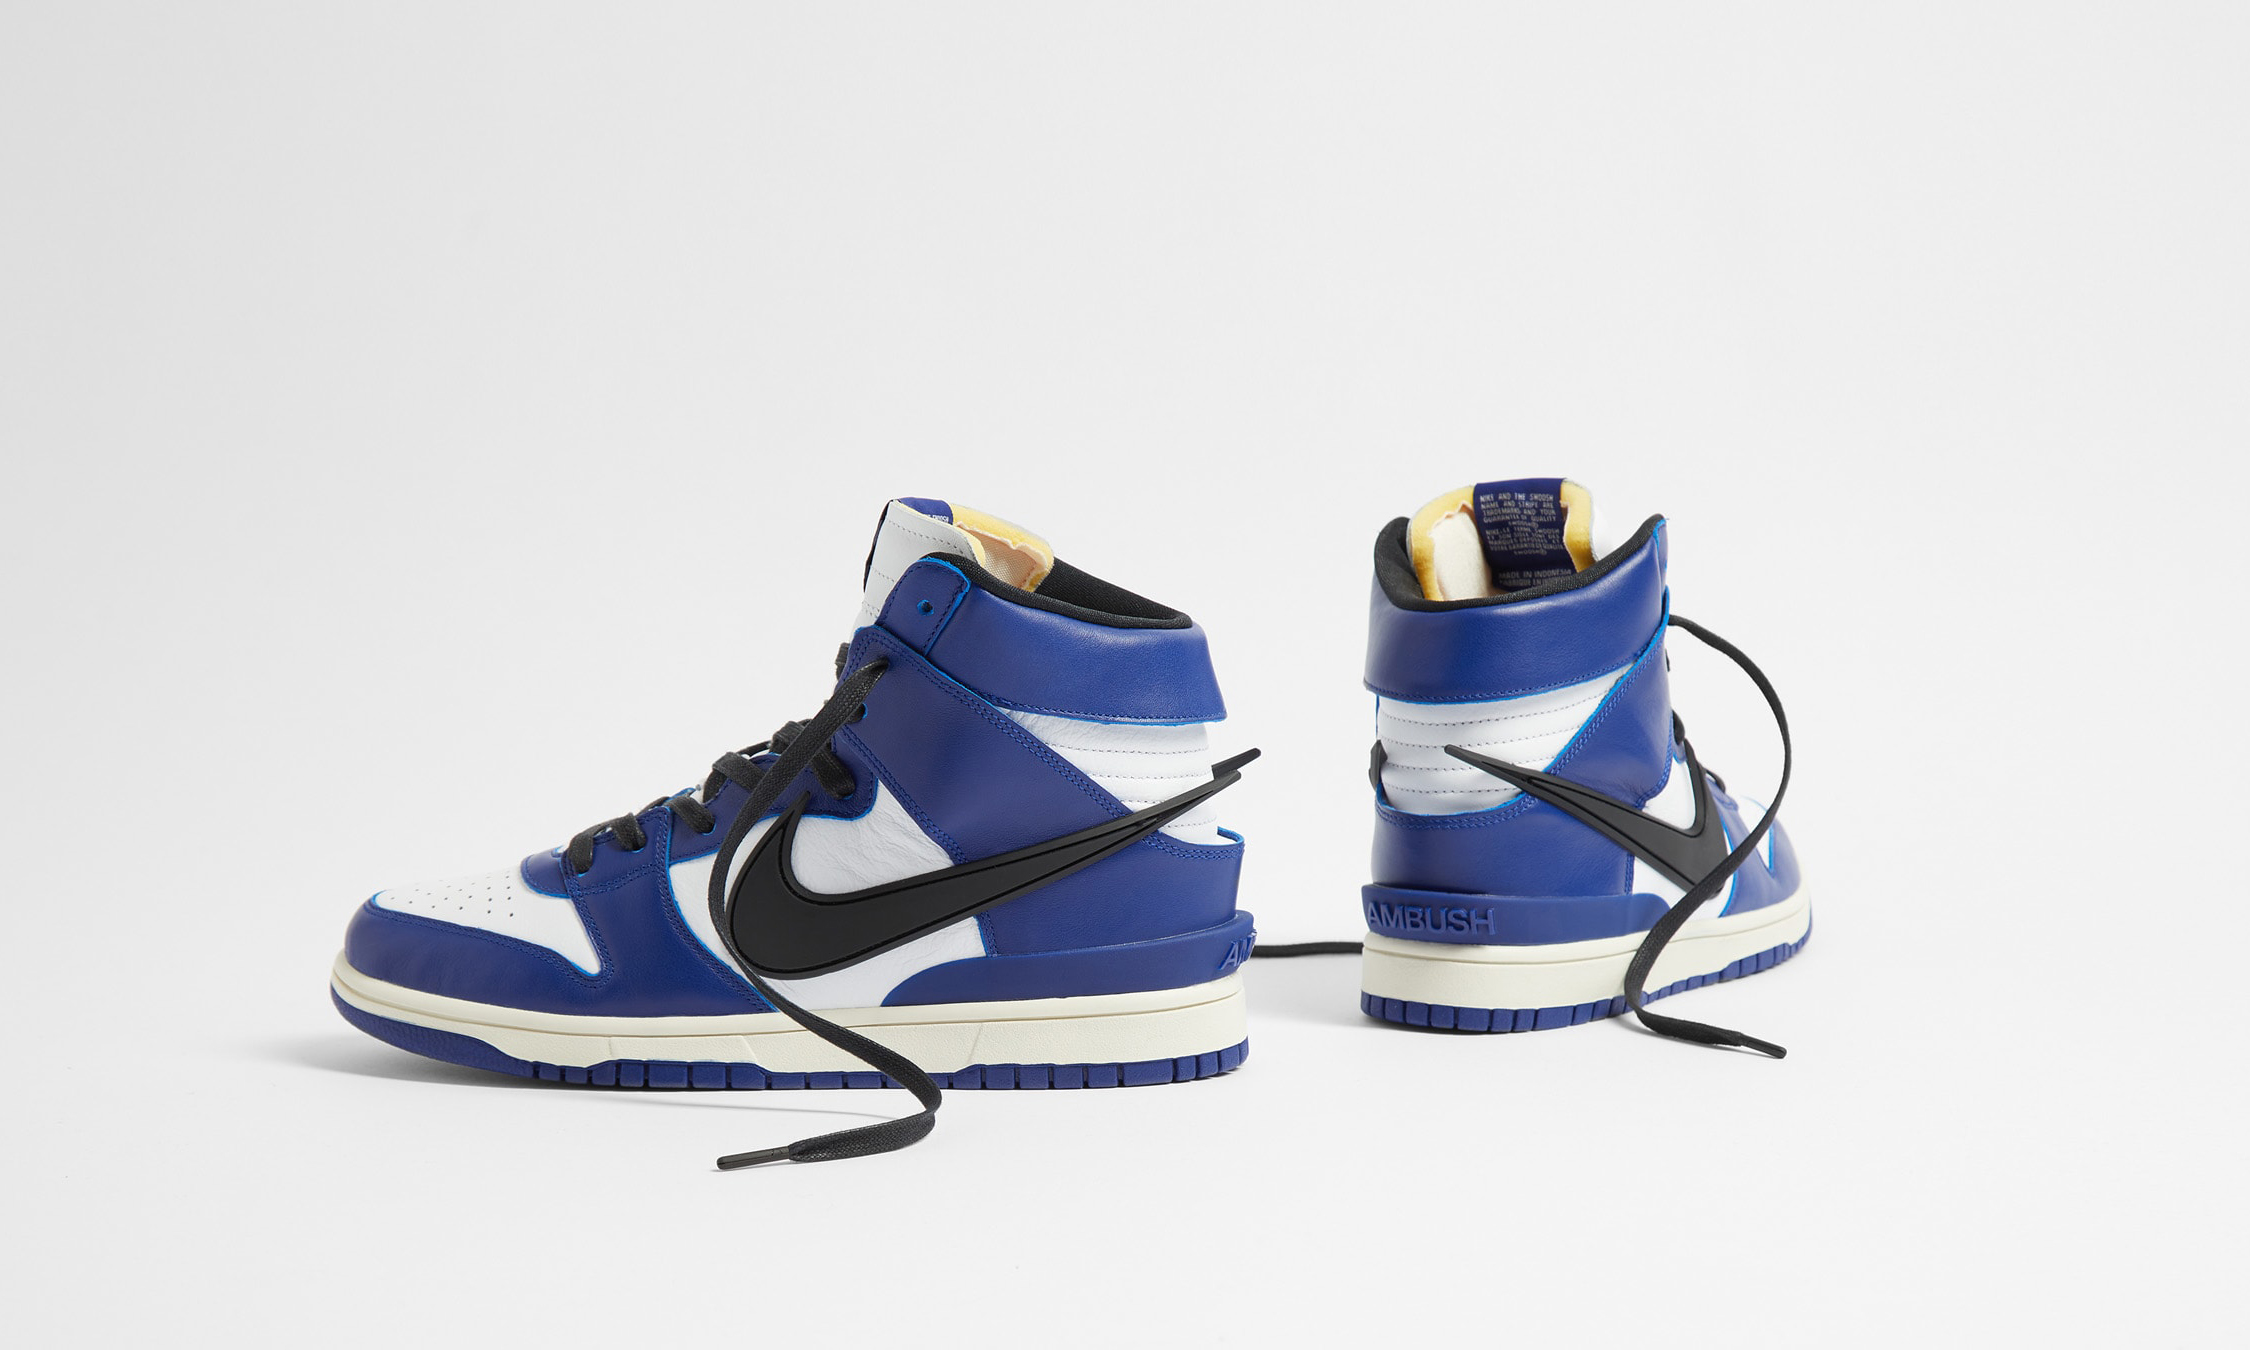 AMBUSH x Nike Dunk High 将在下周发售